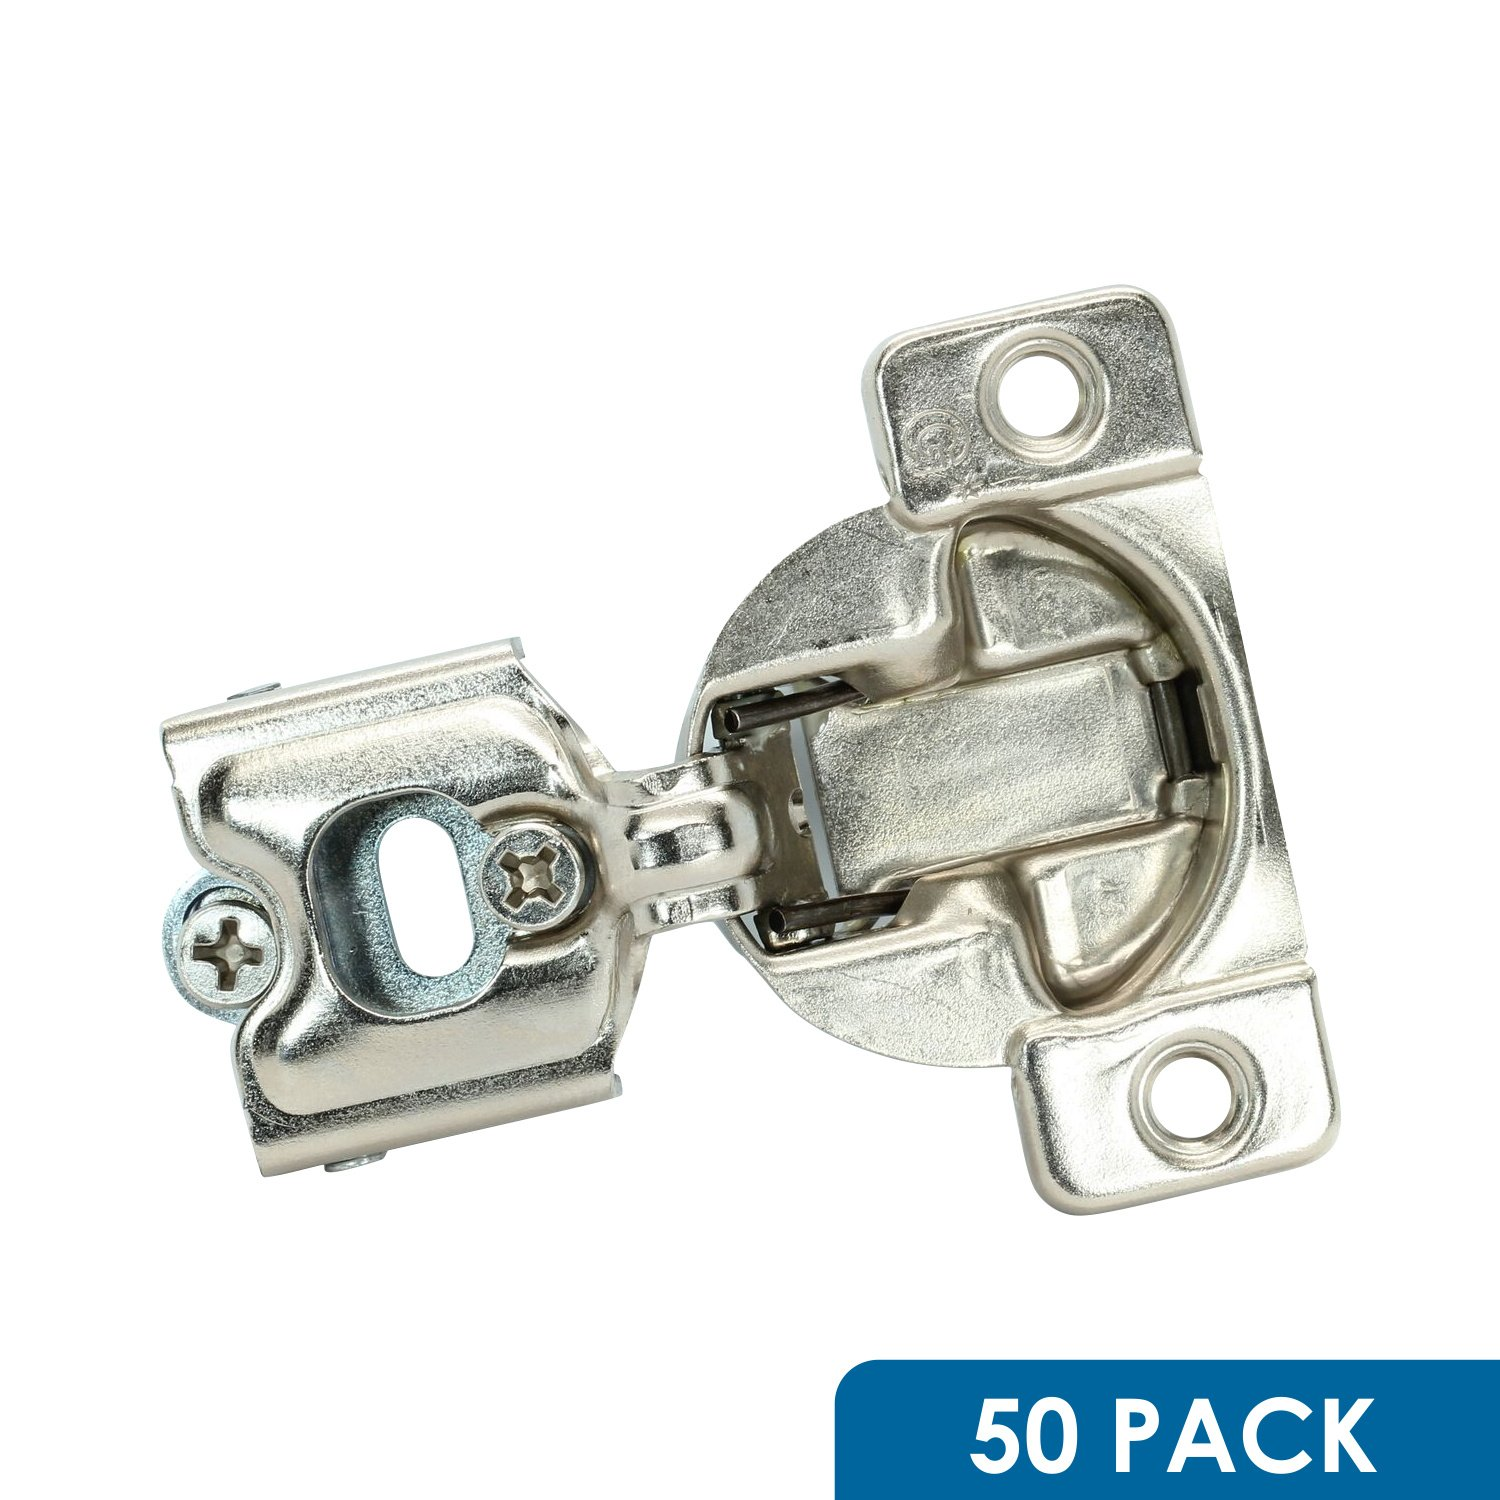 50 Pack Rok Hardware Grass TEC 864 108 Degree 1/4'' Overlay Self Close Screw On Compact Cabinet Hinge 04396-15 3-Way Adjustment